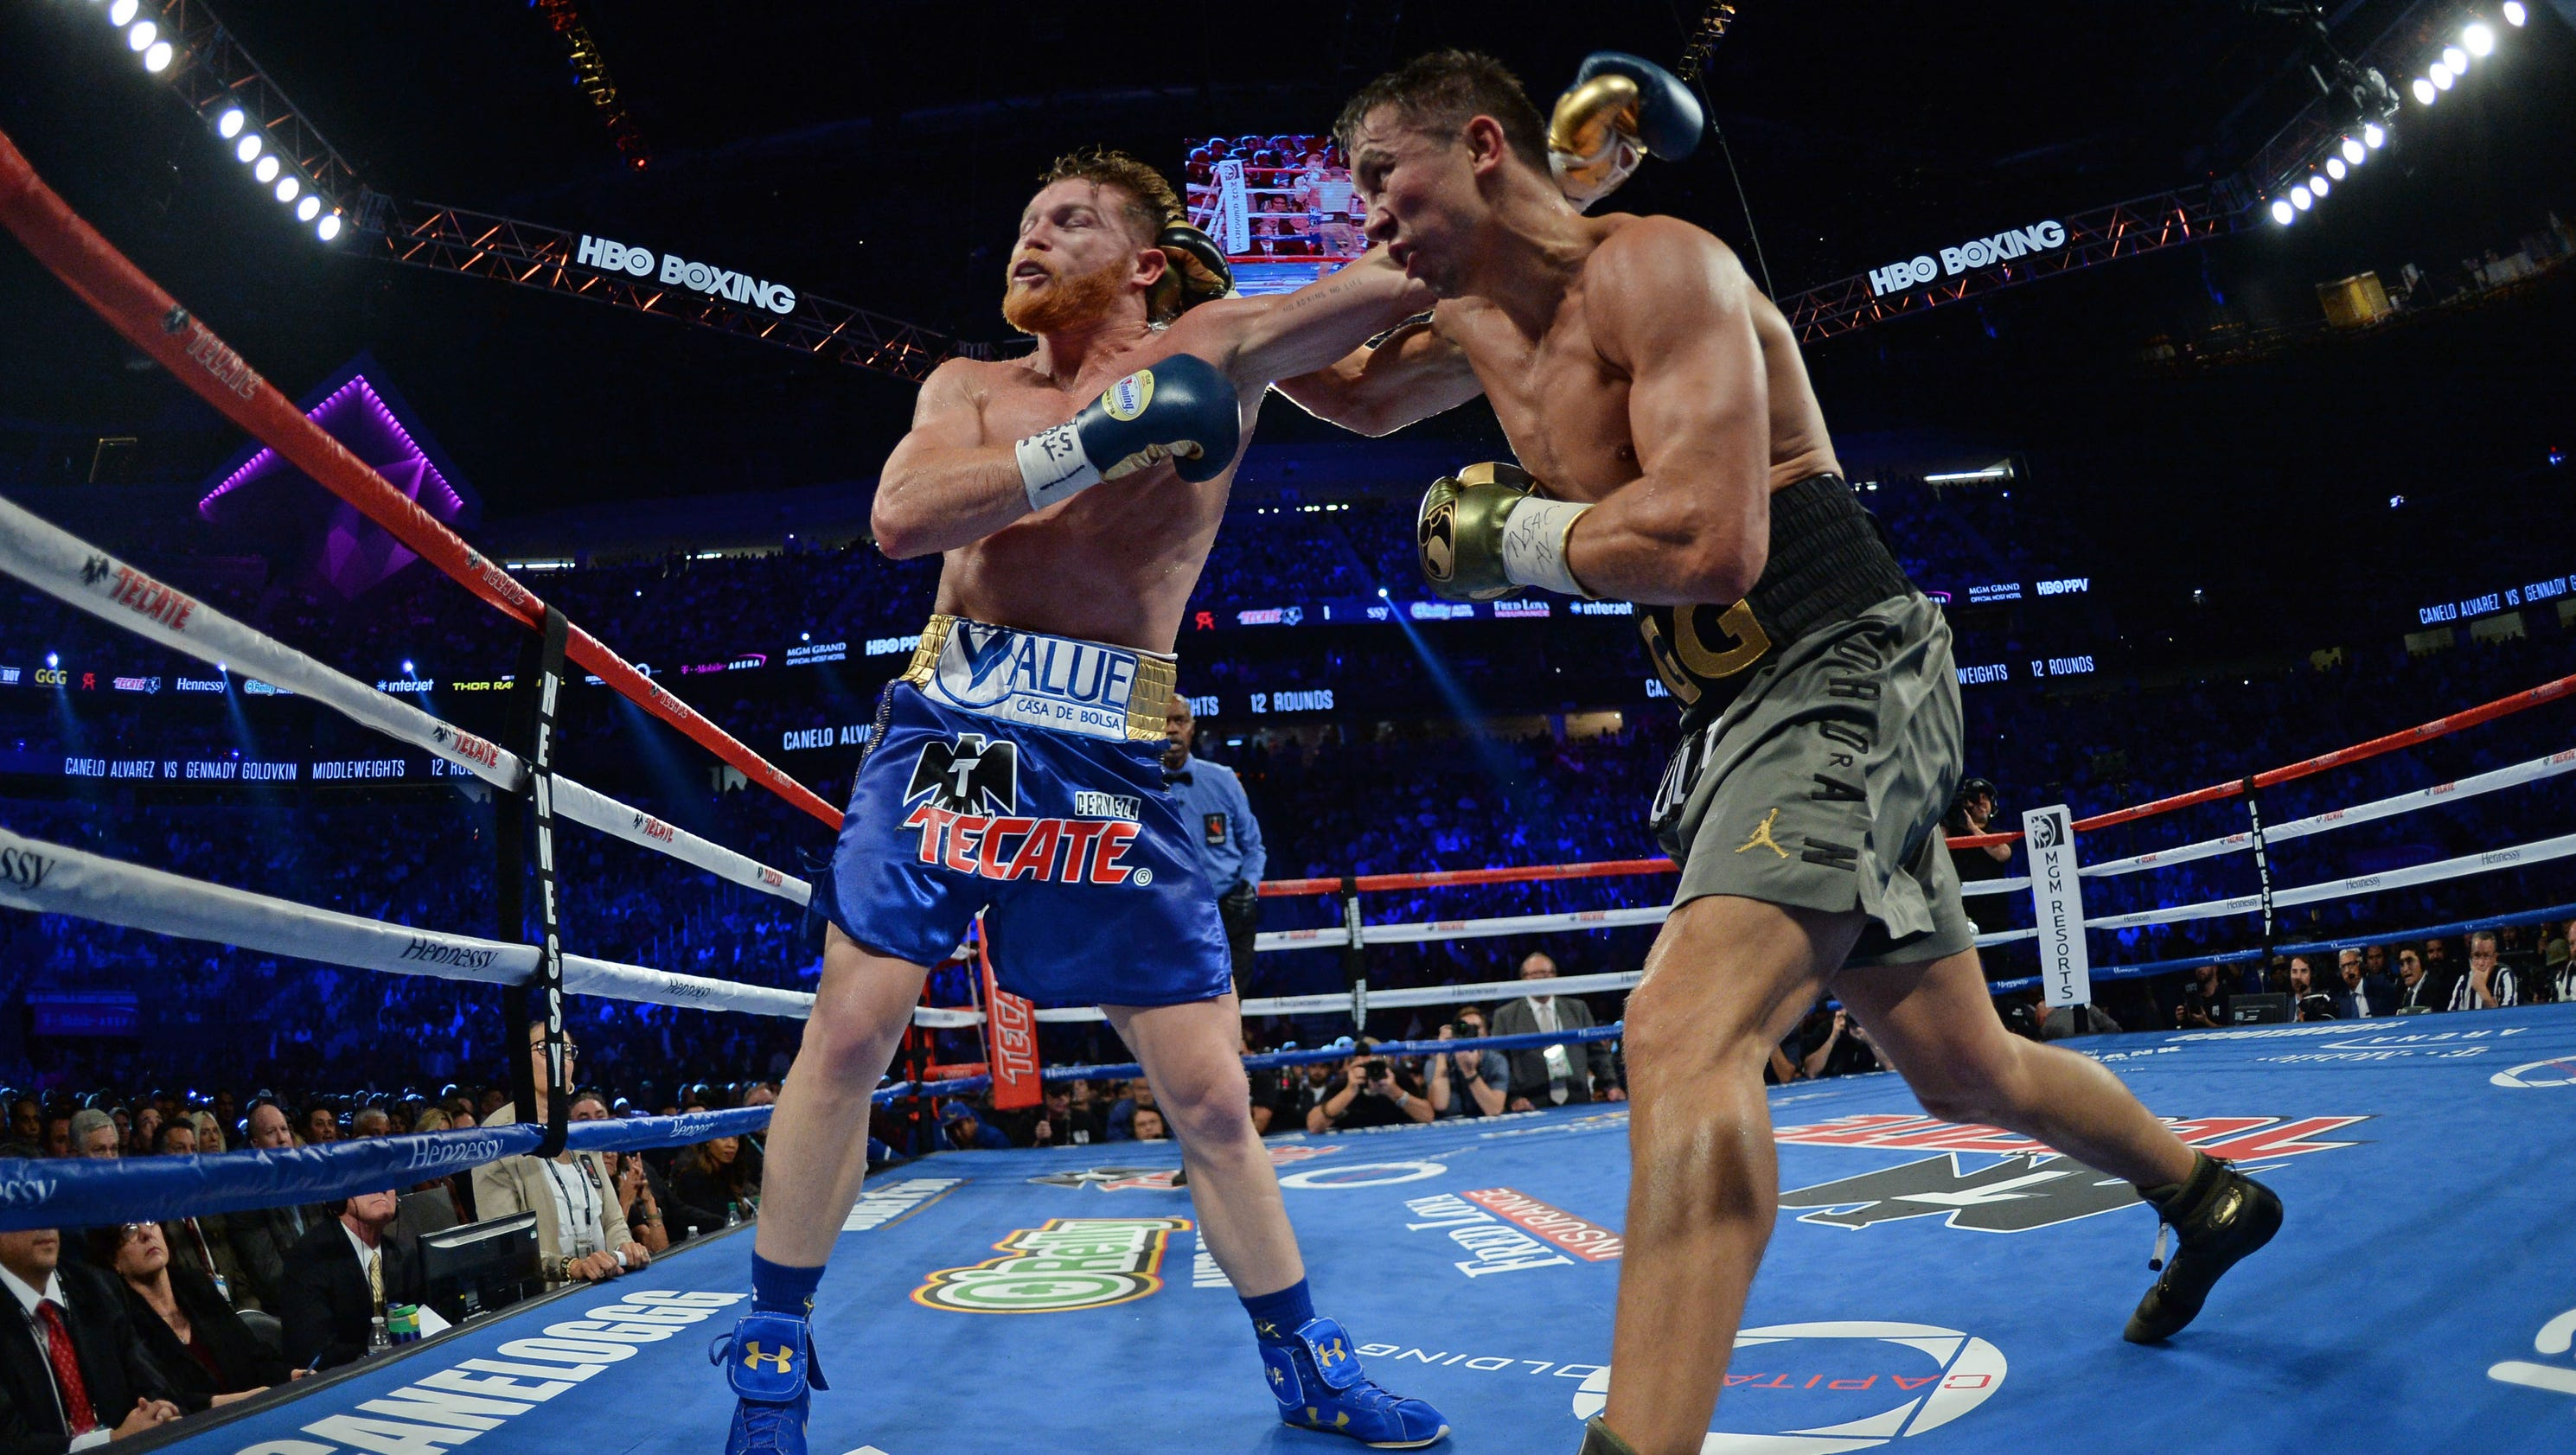 Gennady Golovkin-Canelo Alvarez bout was a blast from boxing's past